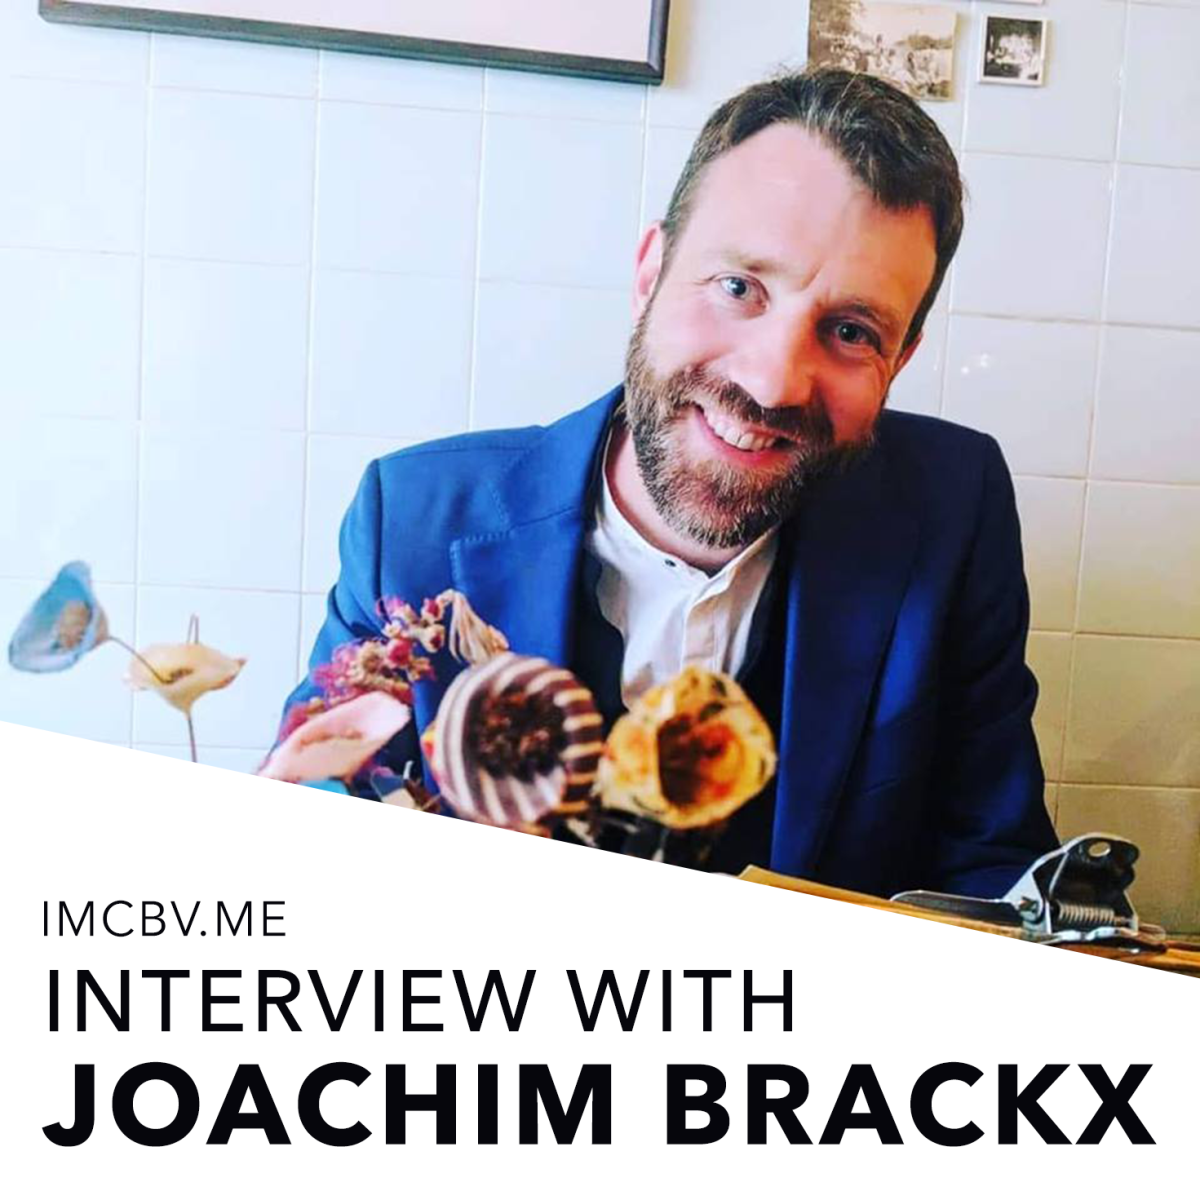 Career change and coaches: scam or the future of work? An interview with Joachim Brackx